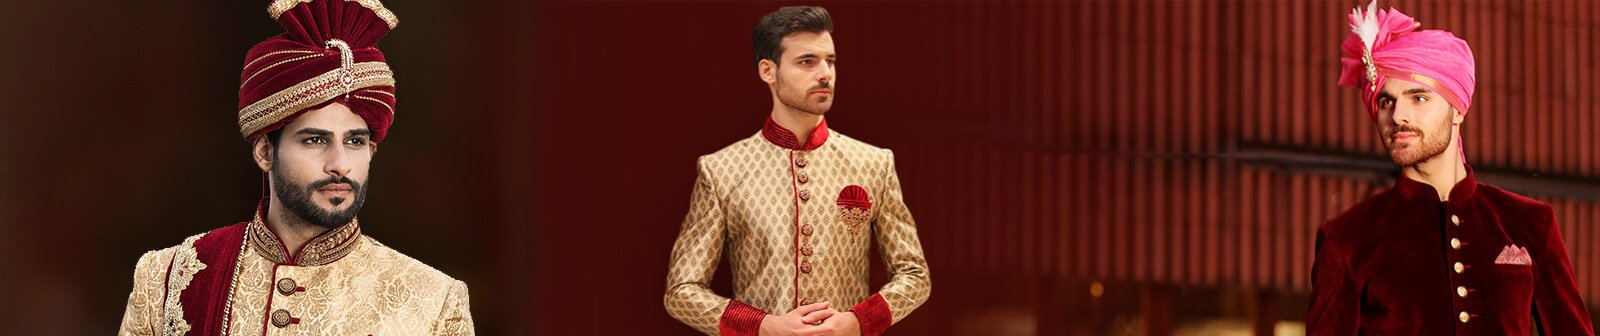 Groom Wear in Kolkata